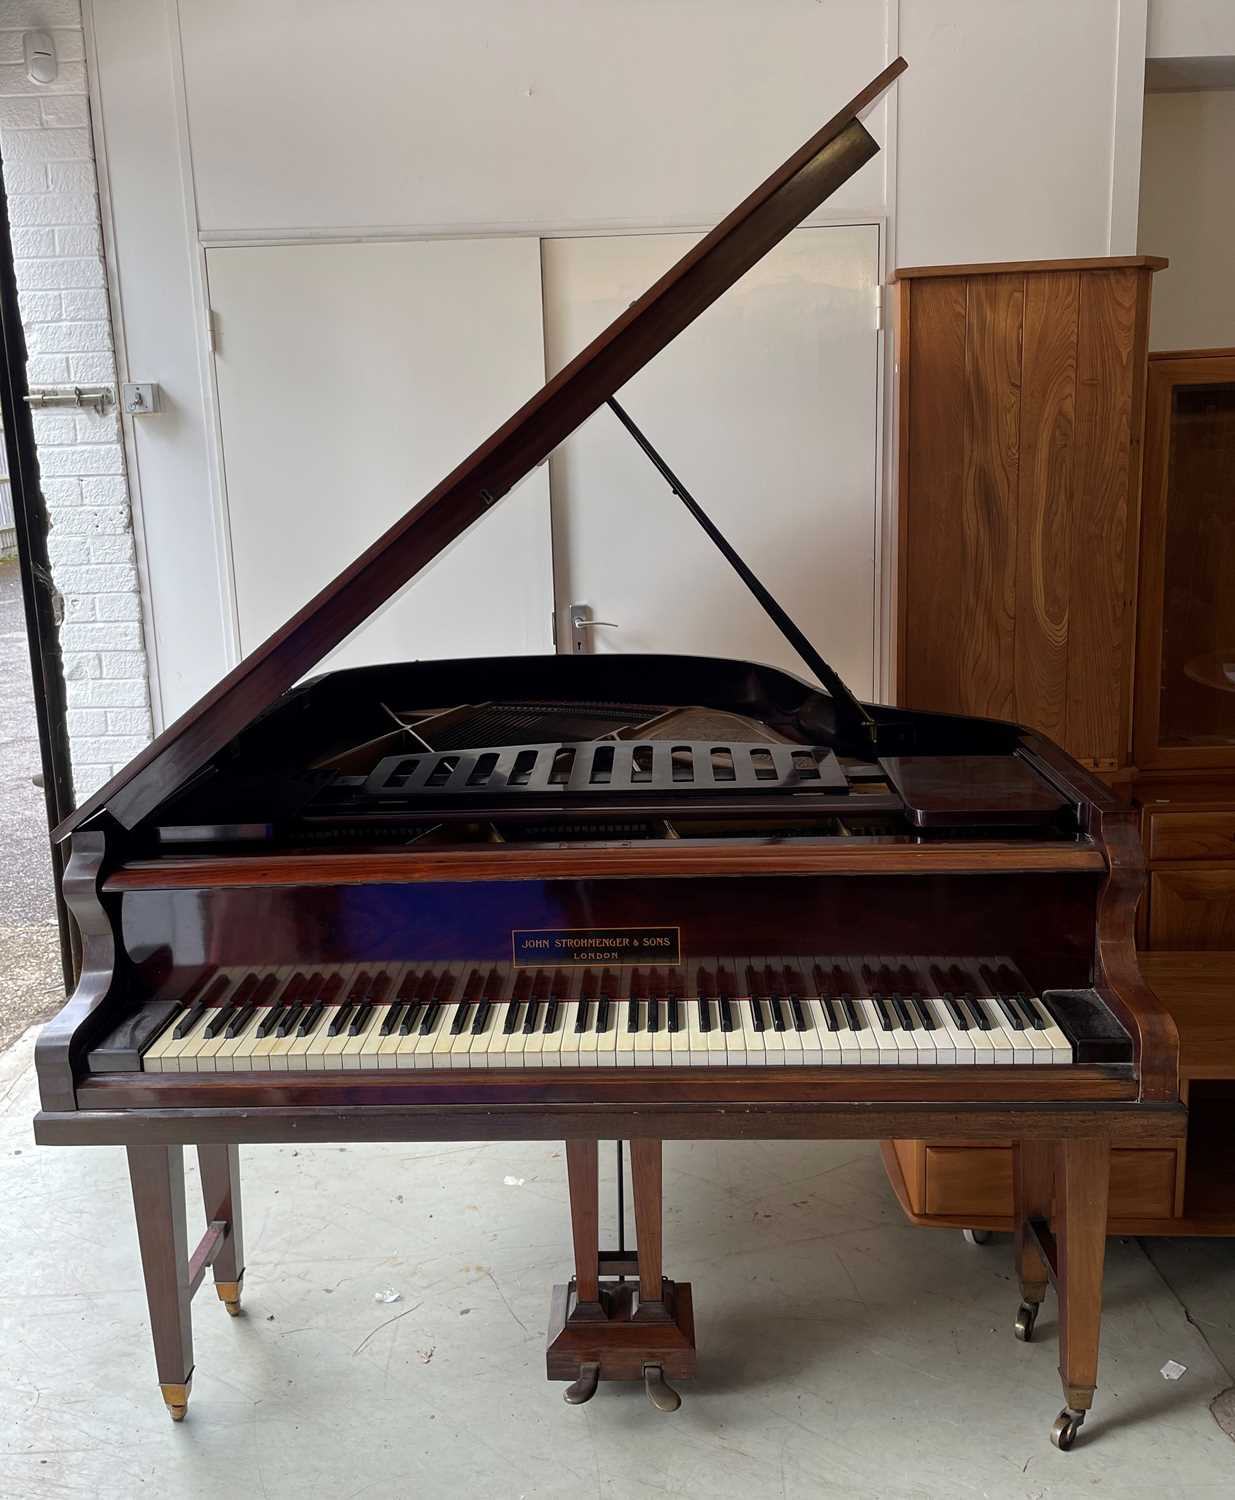 A mahogany cased baby grand piano, by John Strohmenger & Sons, London, 143 cm wide x 101 cm high x - Image 2 of 21